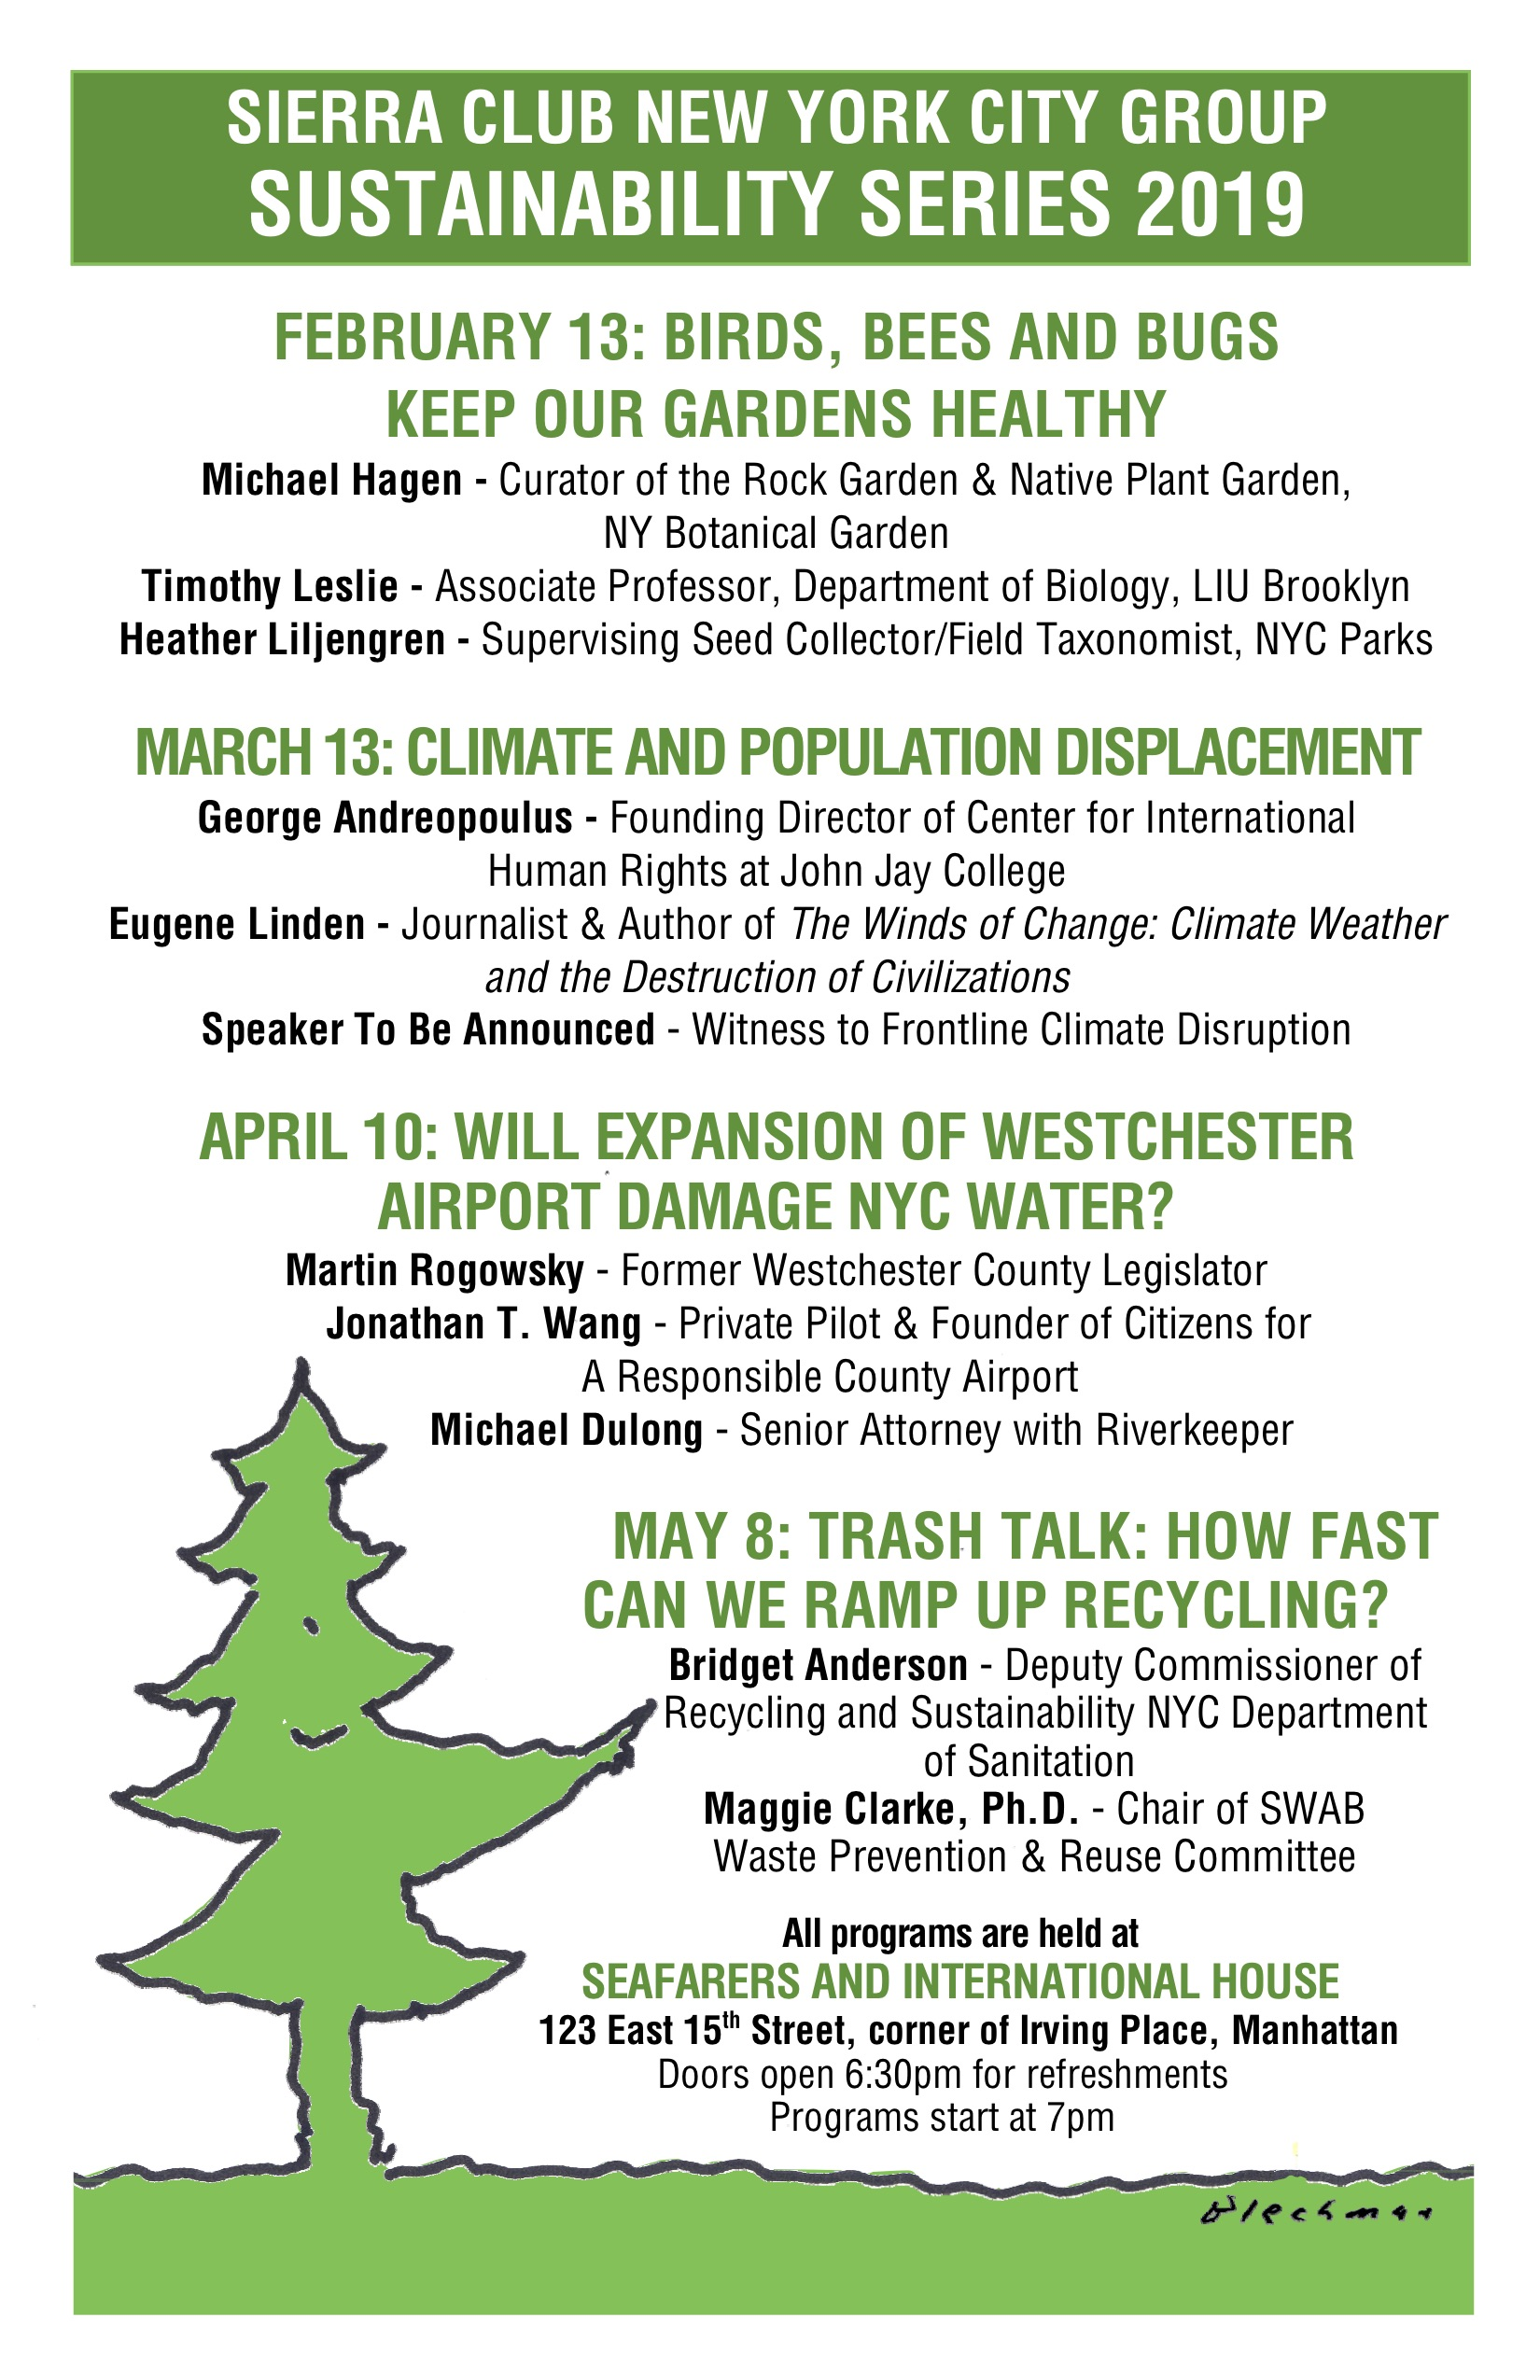 Climate and Population Displacement - The Sierra Club of New